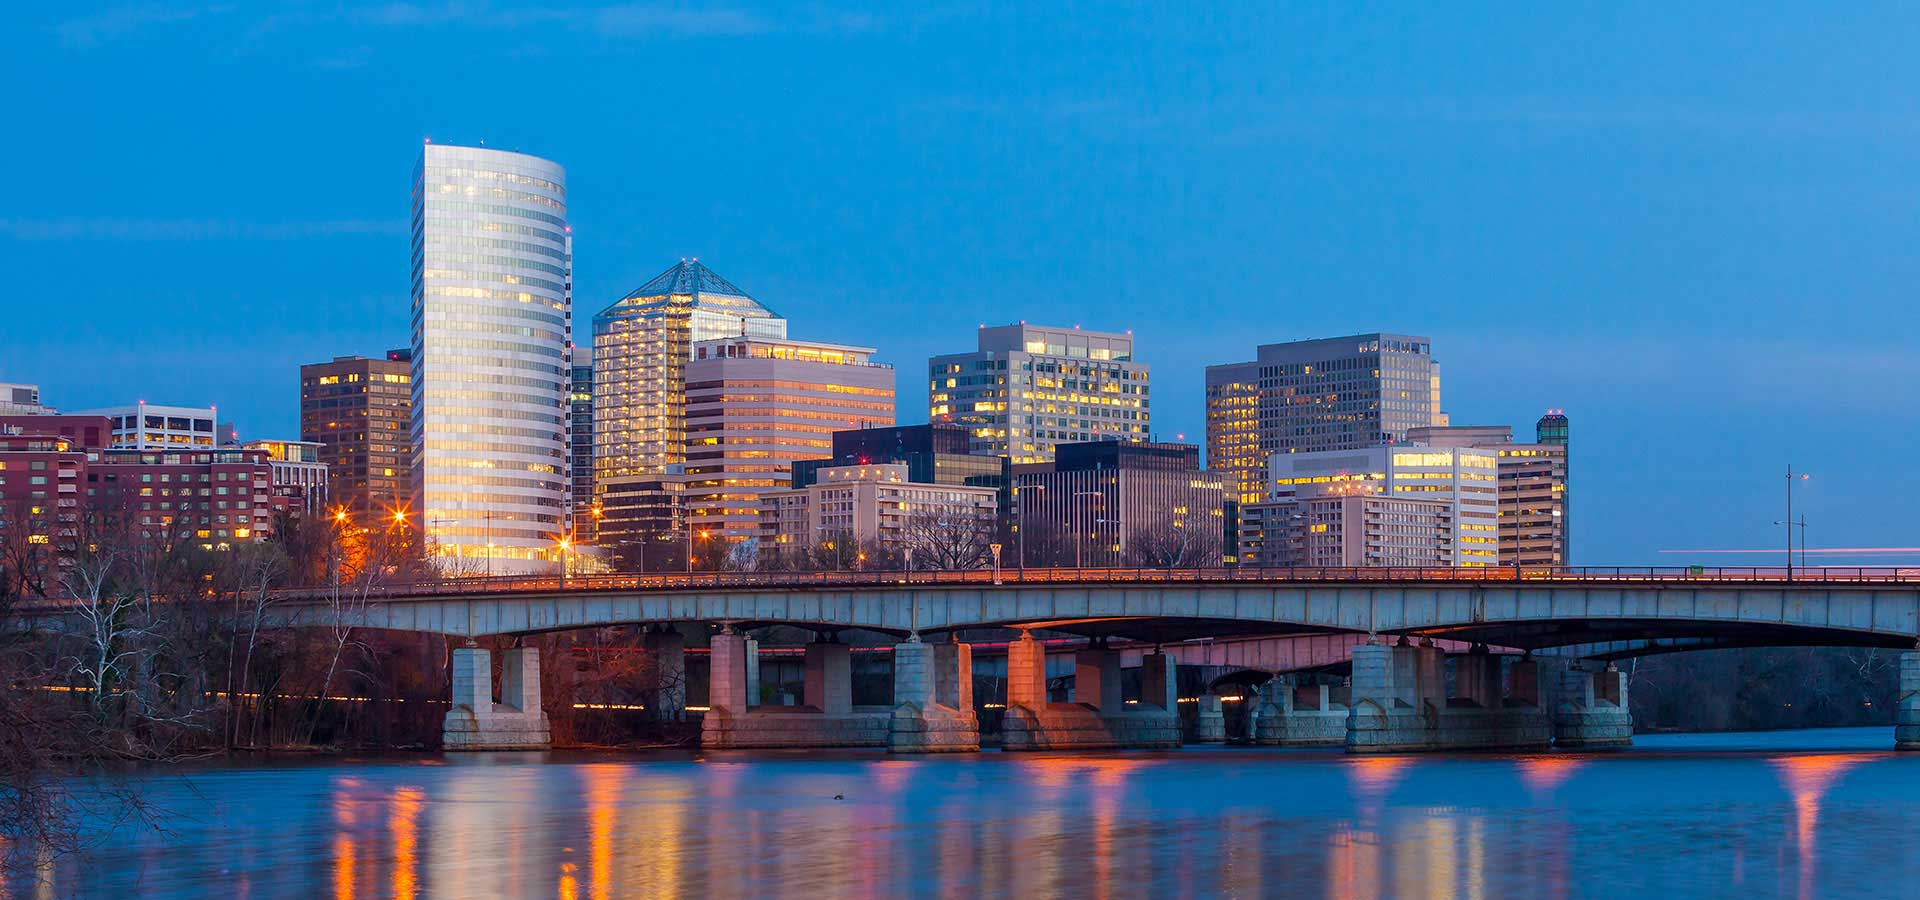 benchmark-automation-controls-in-rosslyn-virginia_2